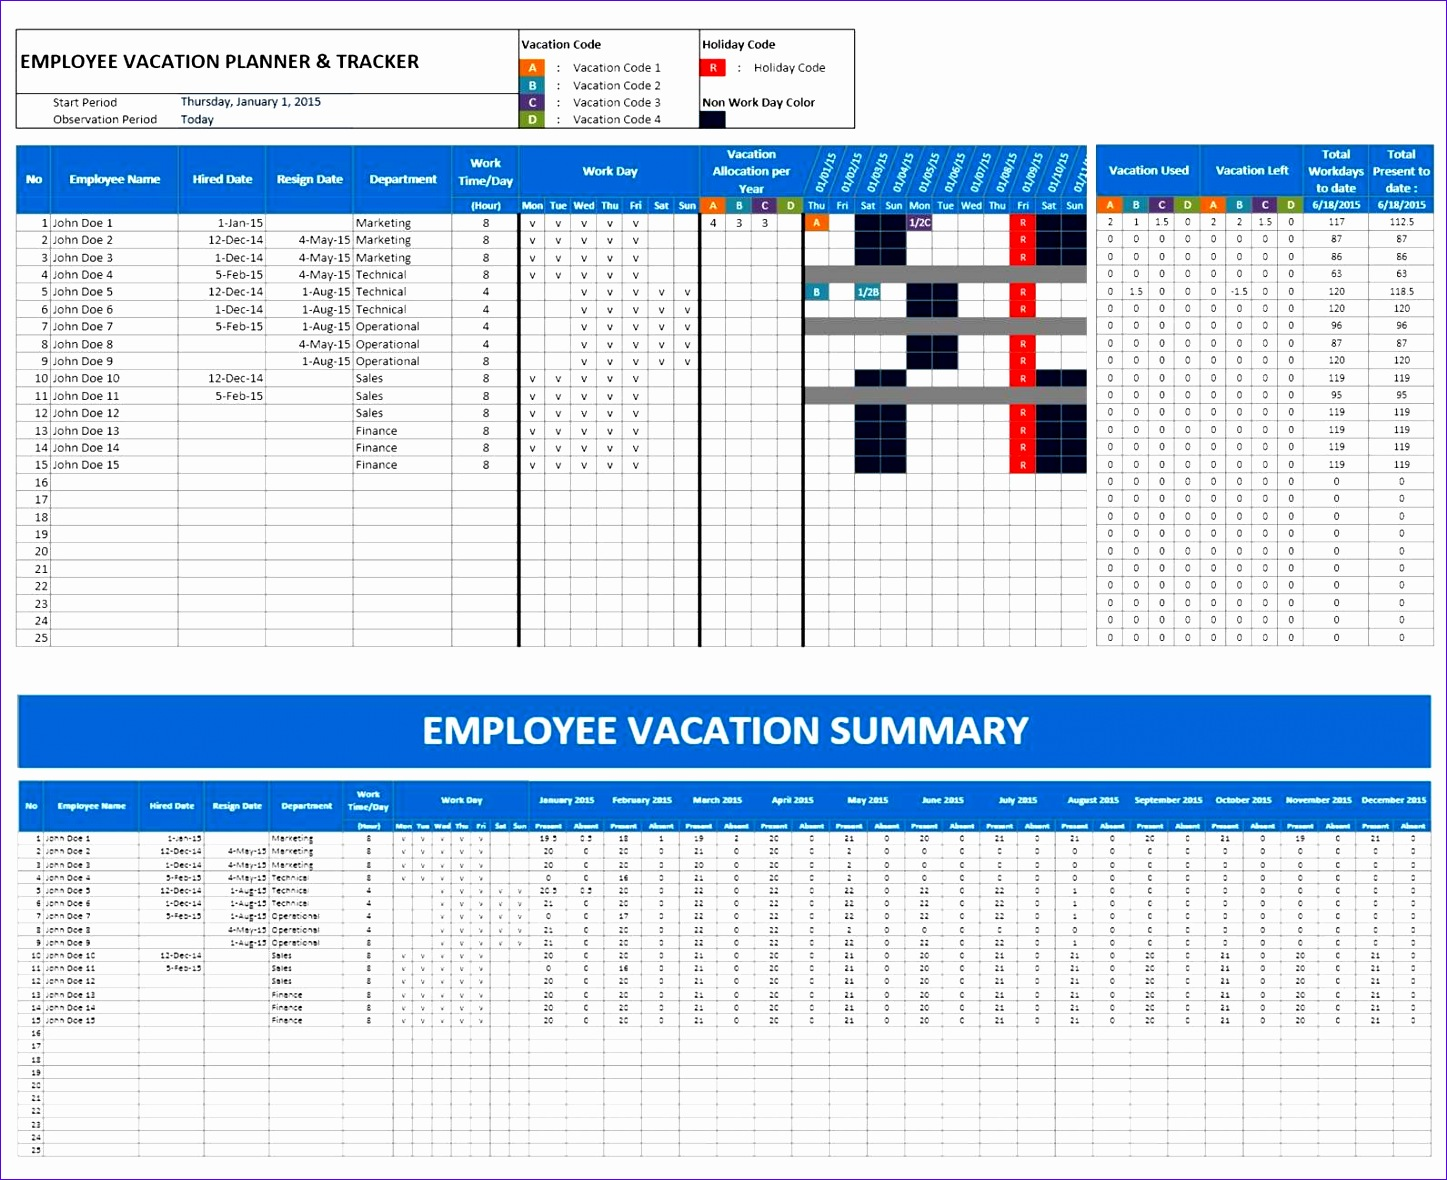 Excel Survey Results Template Bkzgn Unique Excel Templates